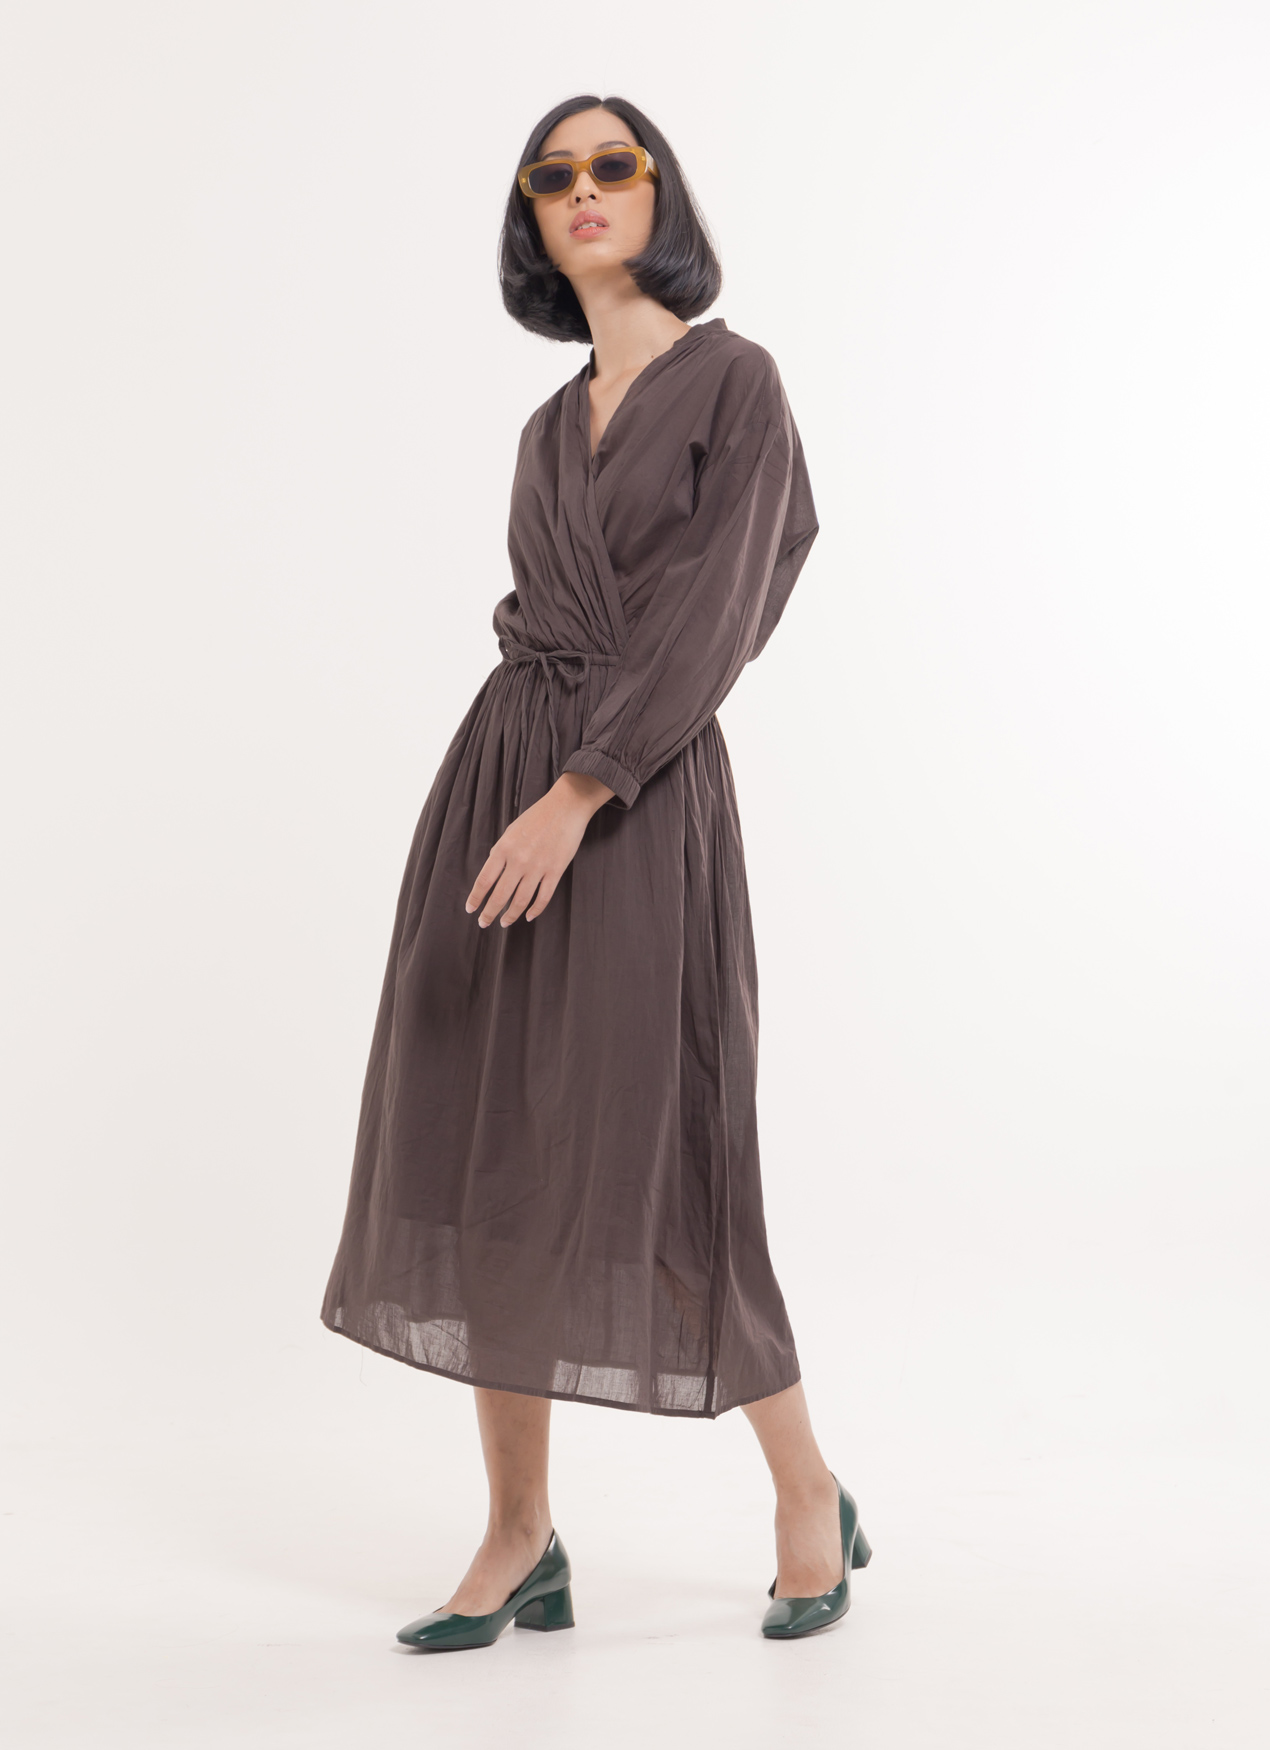 Sevendays Sunday Keira Dress - Black